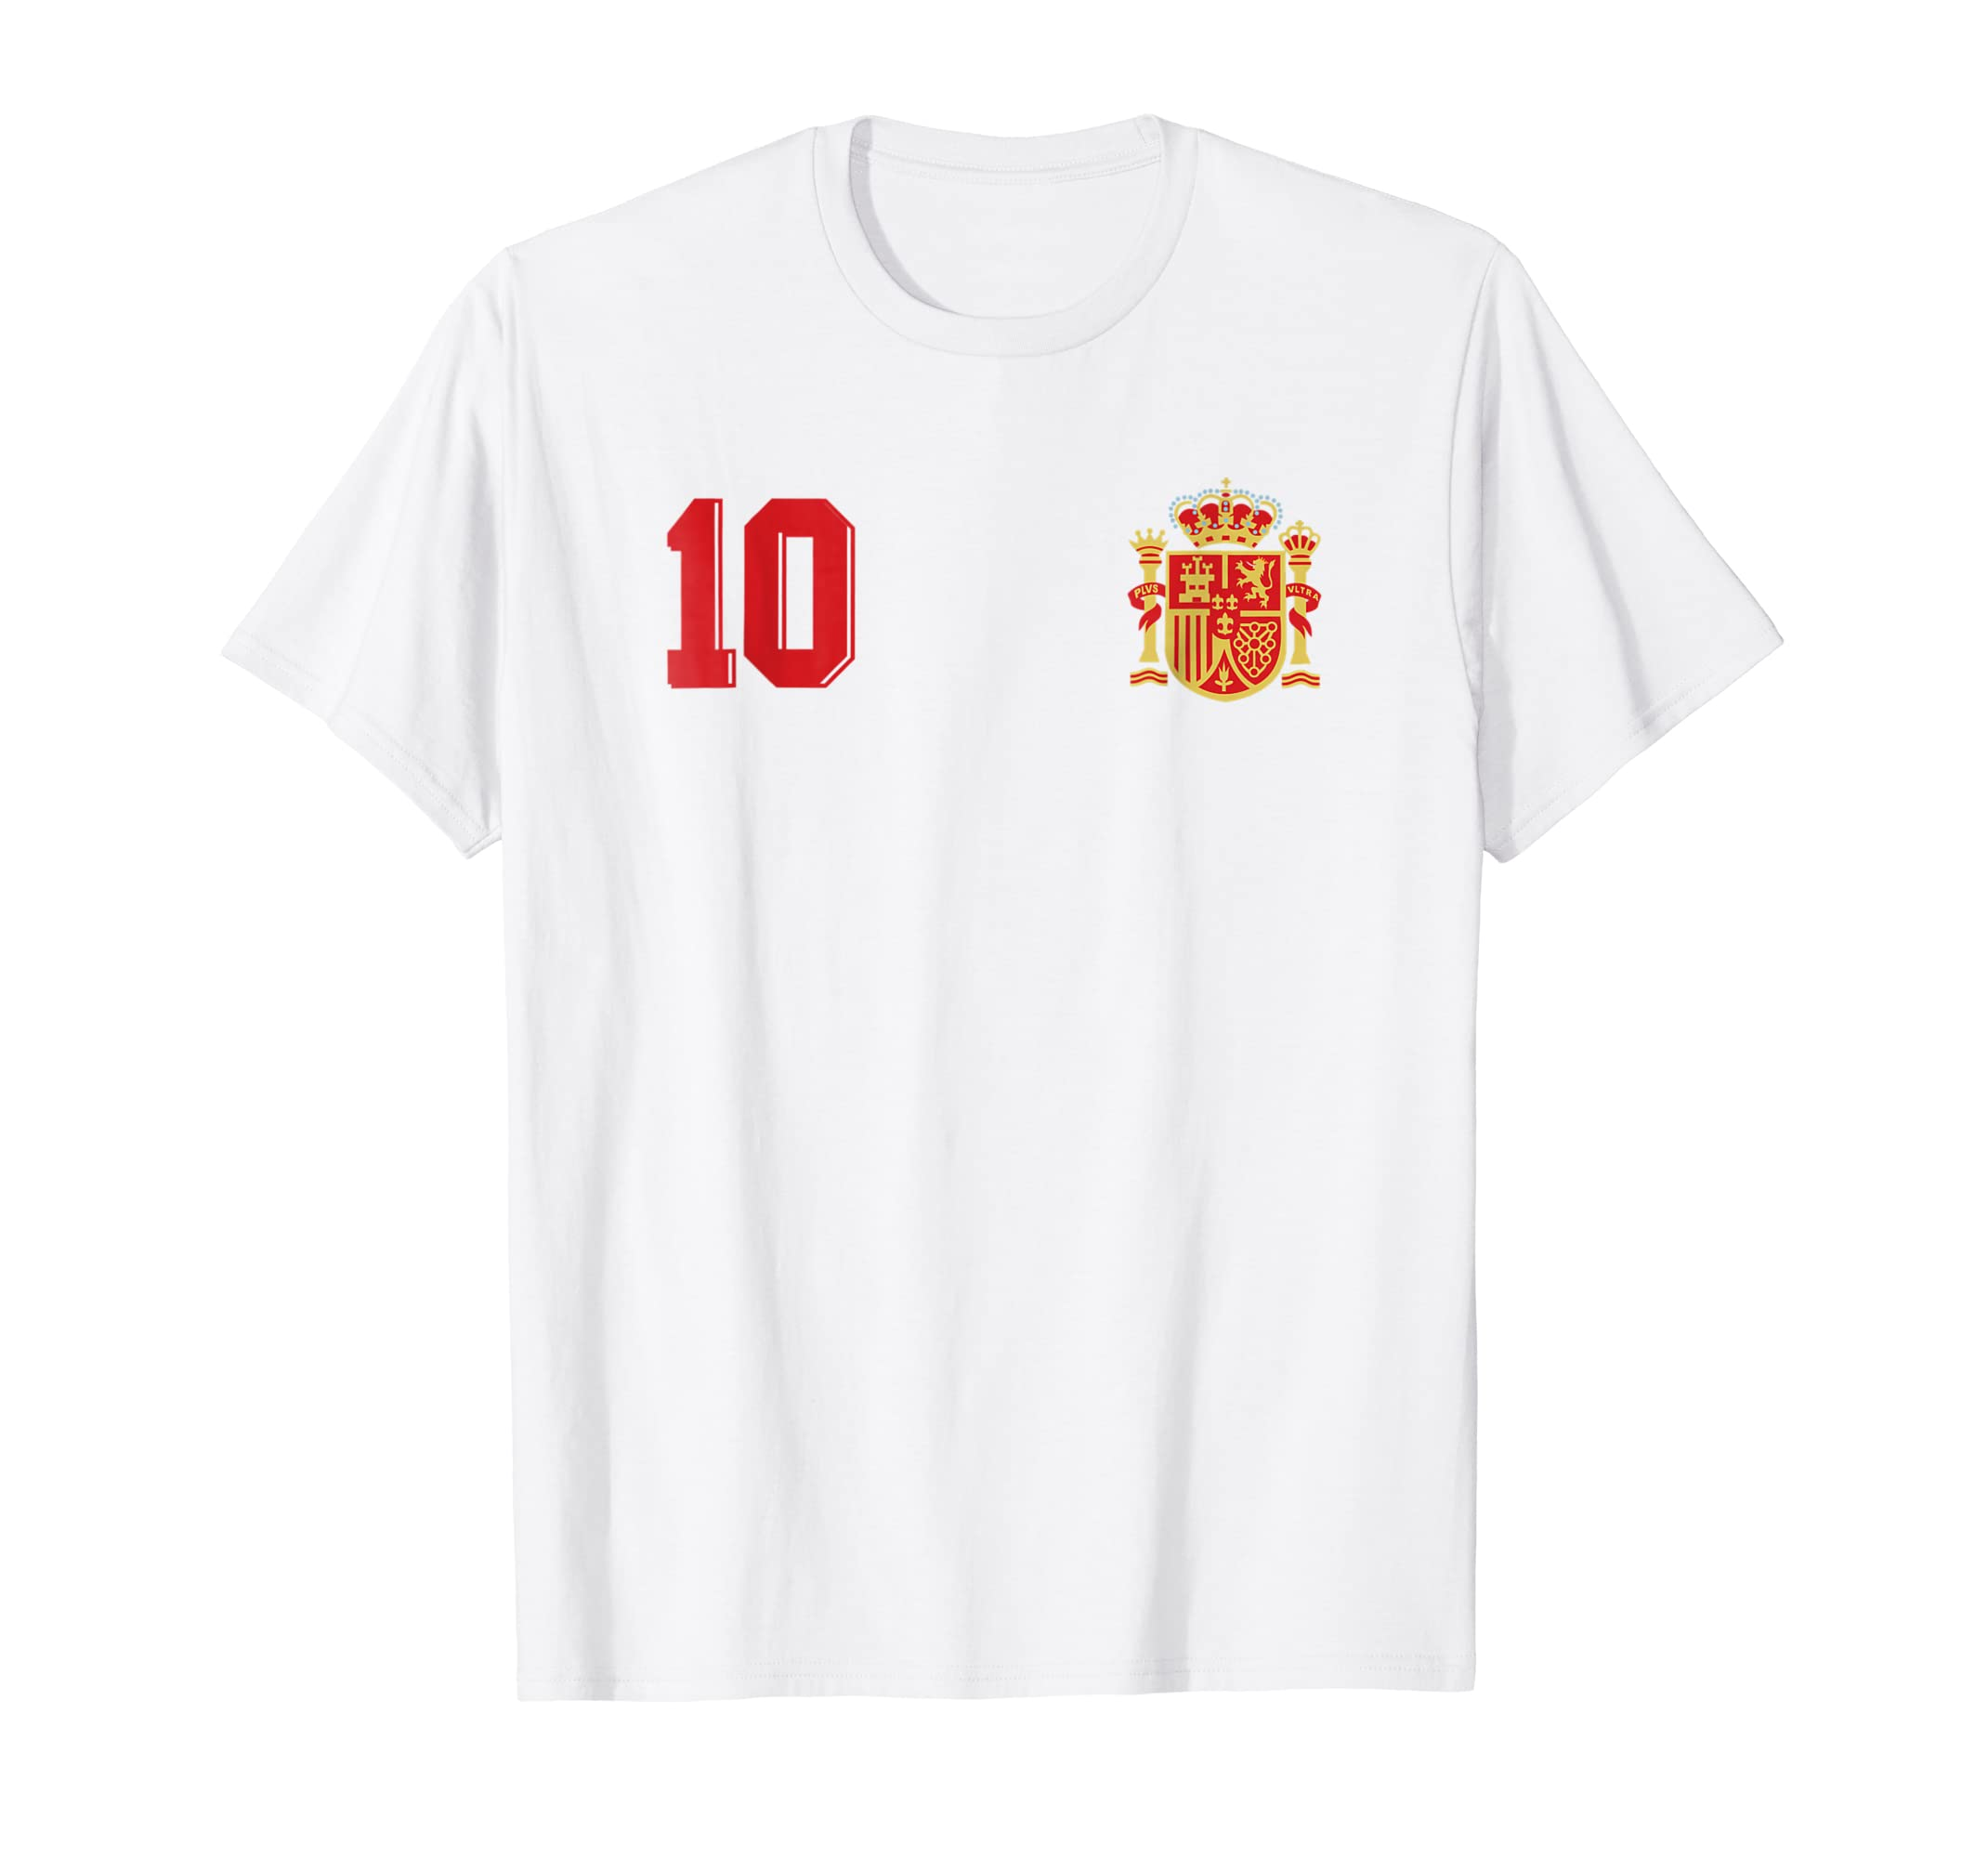 Amazon.com: Camiseta Espana Futbol Retro Spain Football Soccer T-Shirt: Clothing